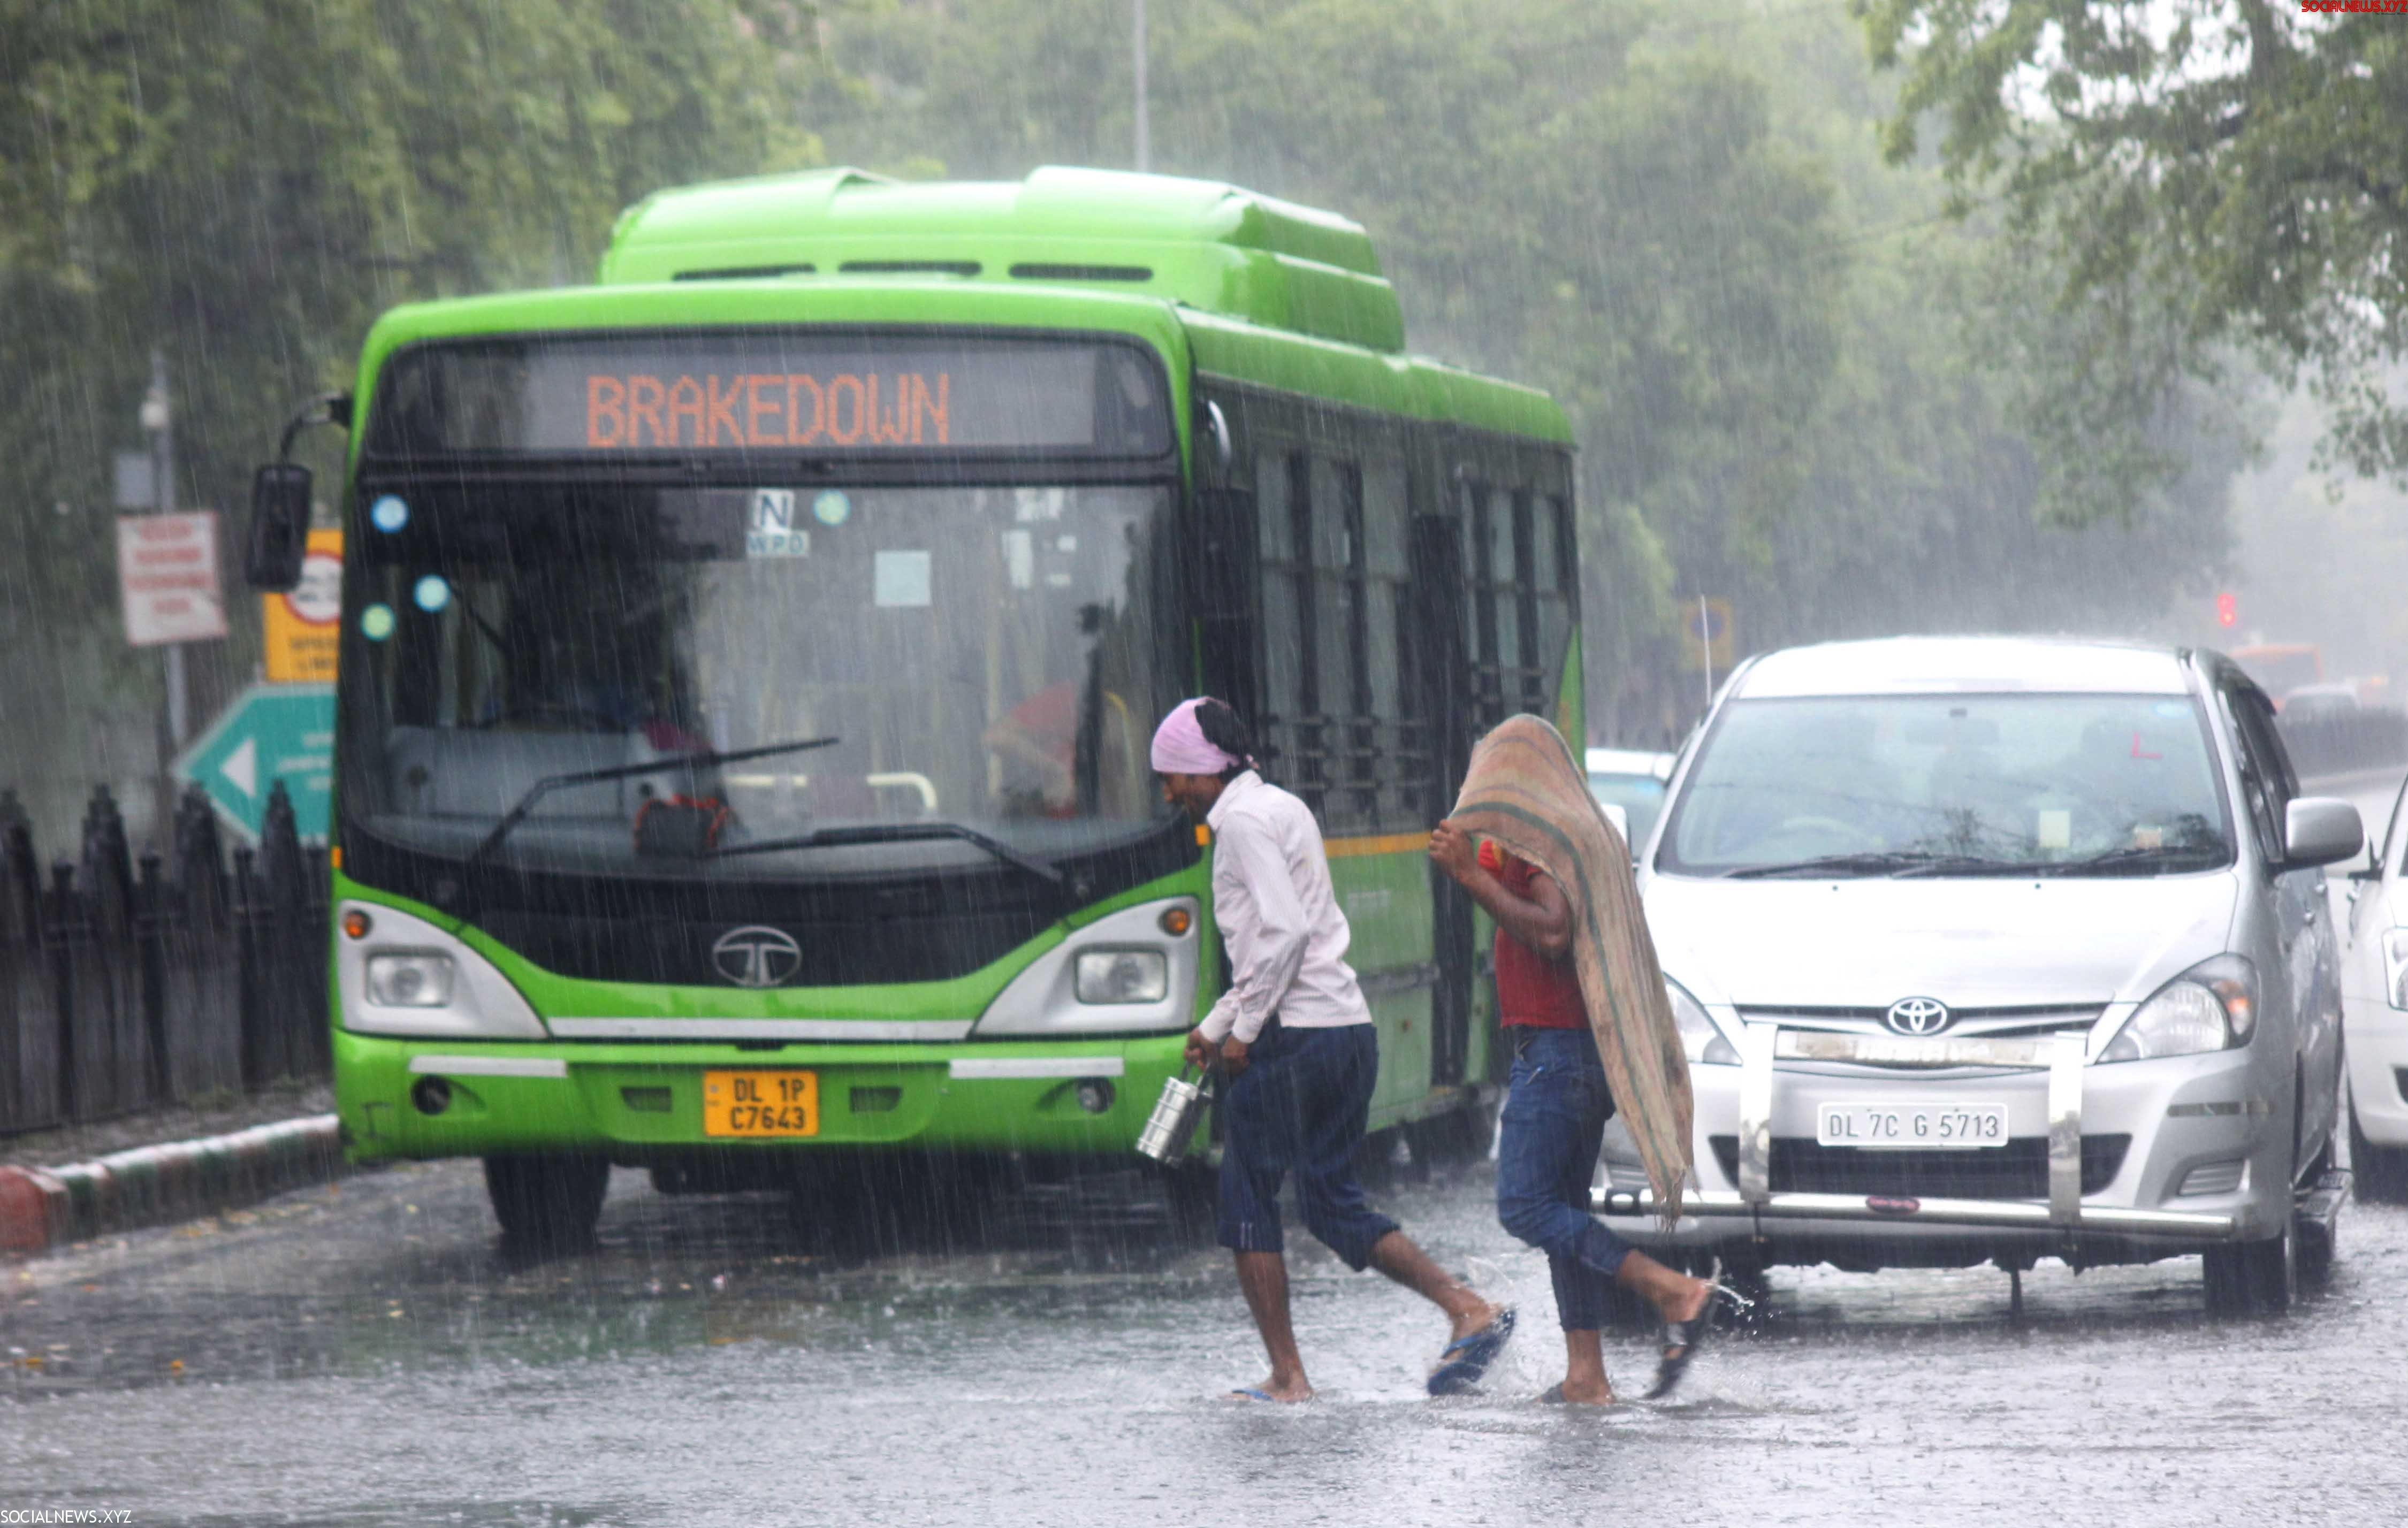 Moderate rain likely in Delhi in next 24 hours